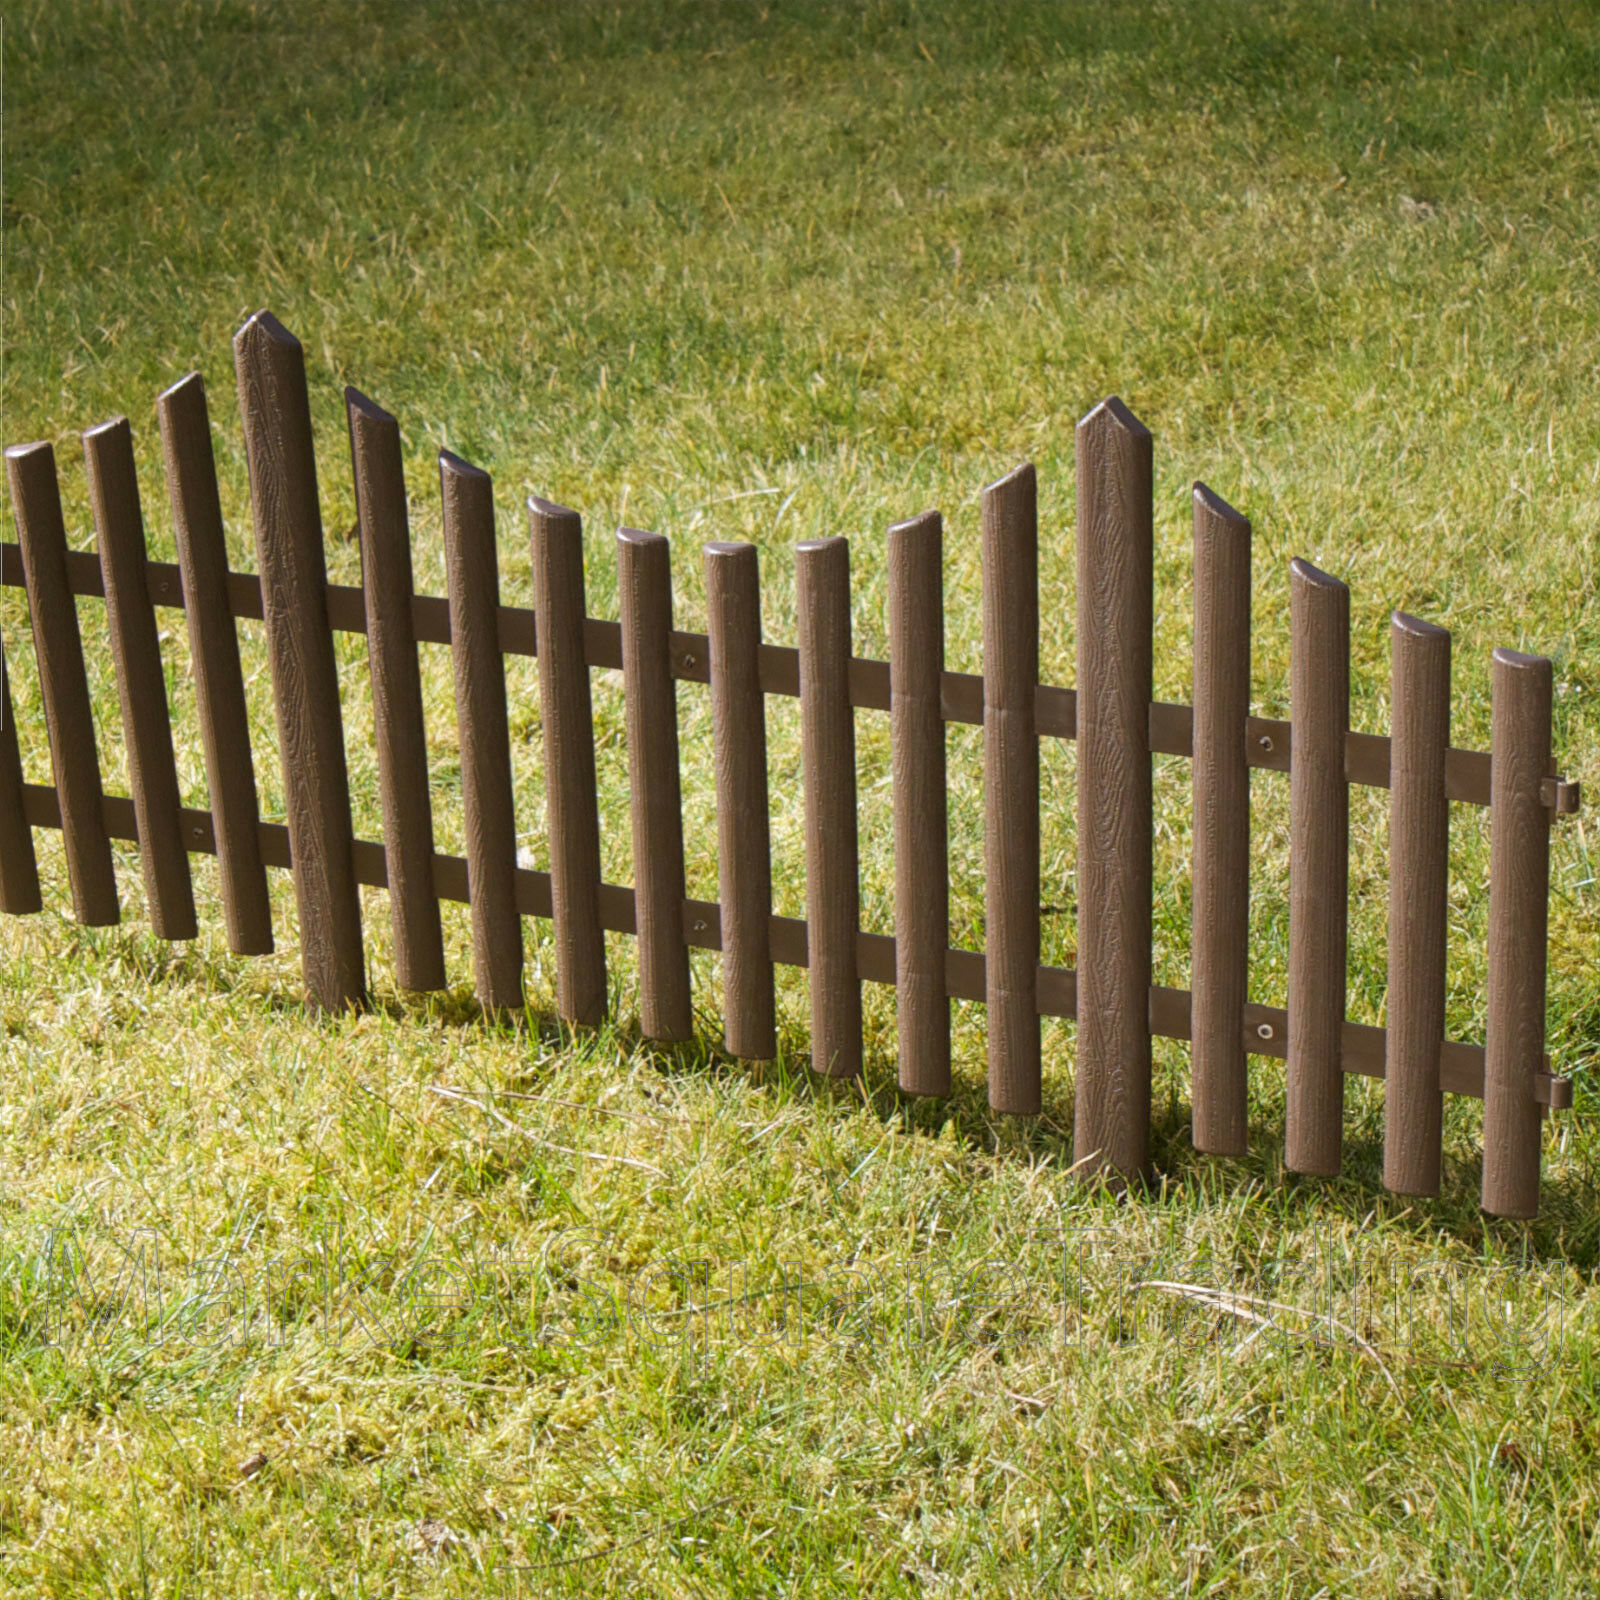 4 BROWN PLASTIC Wooden Effect Lawn Border Edge Garden Edging Picket ...